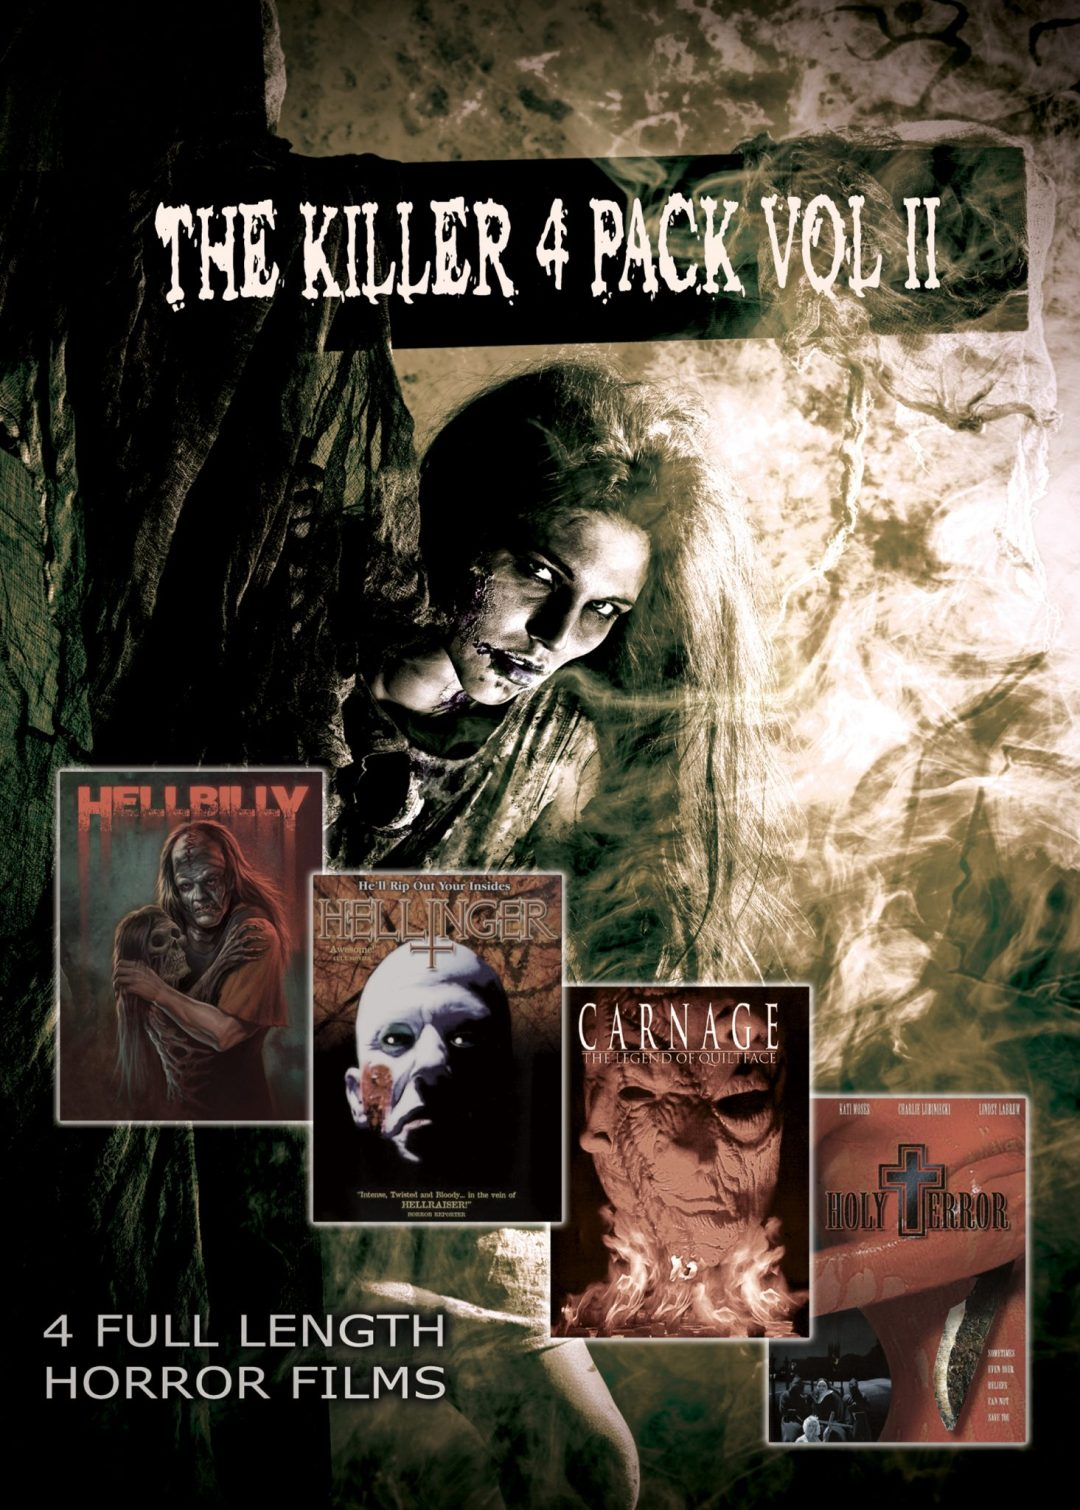 SGL Entertainment Releases 'The Killer 4 Pack Vol II' on DVD